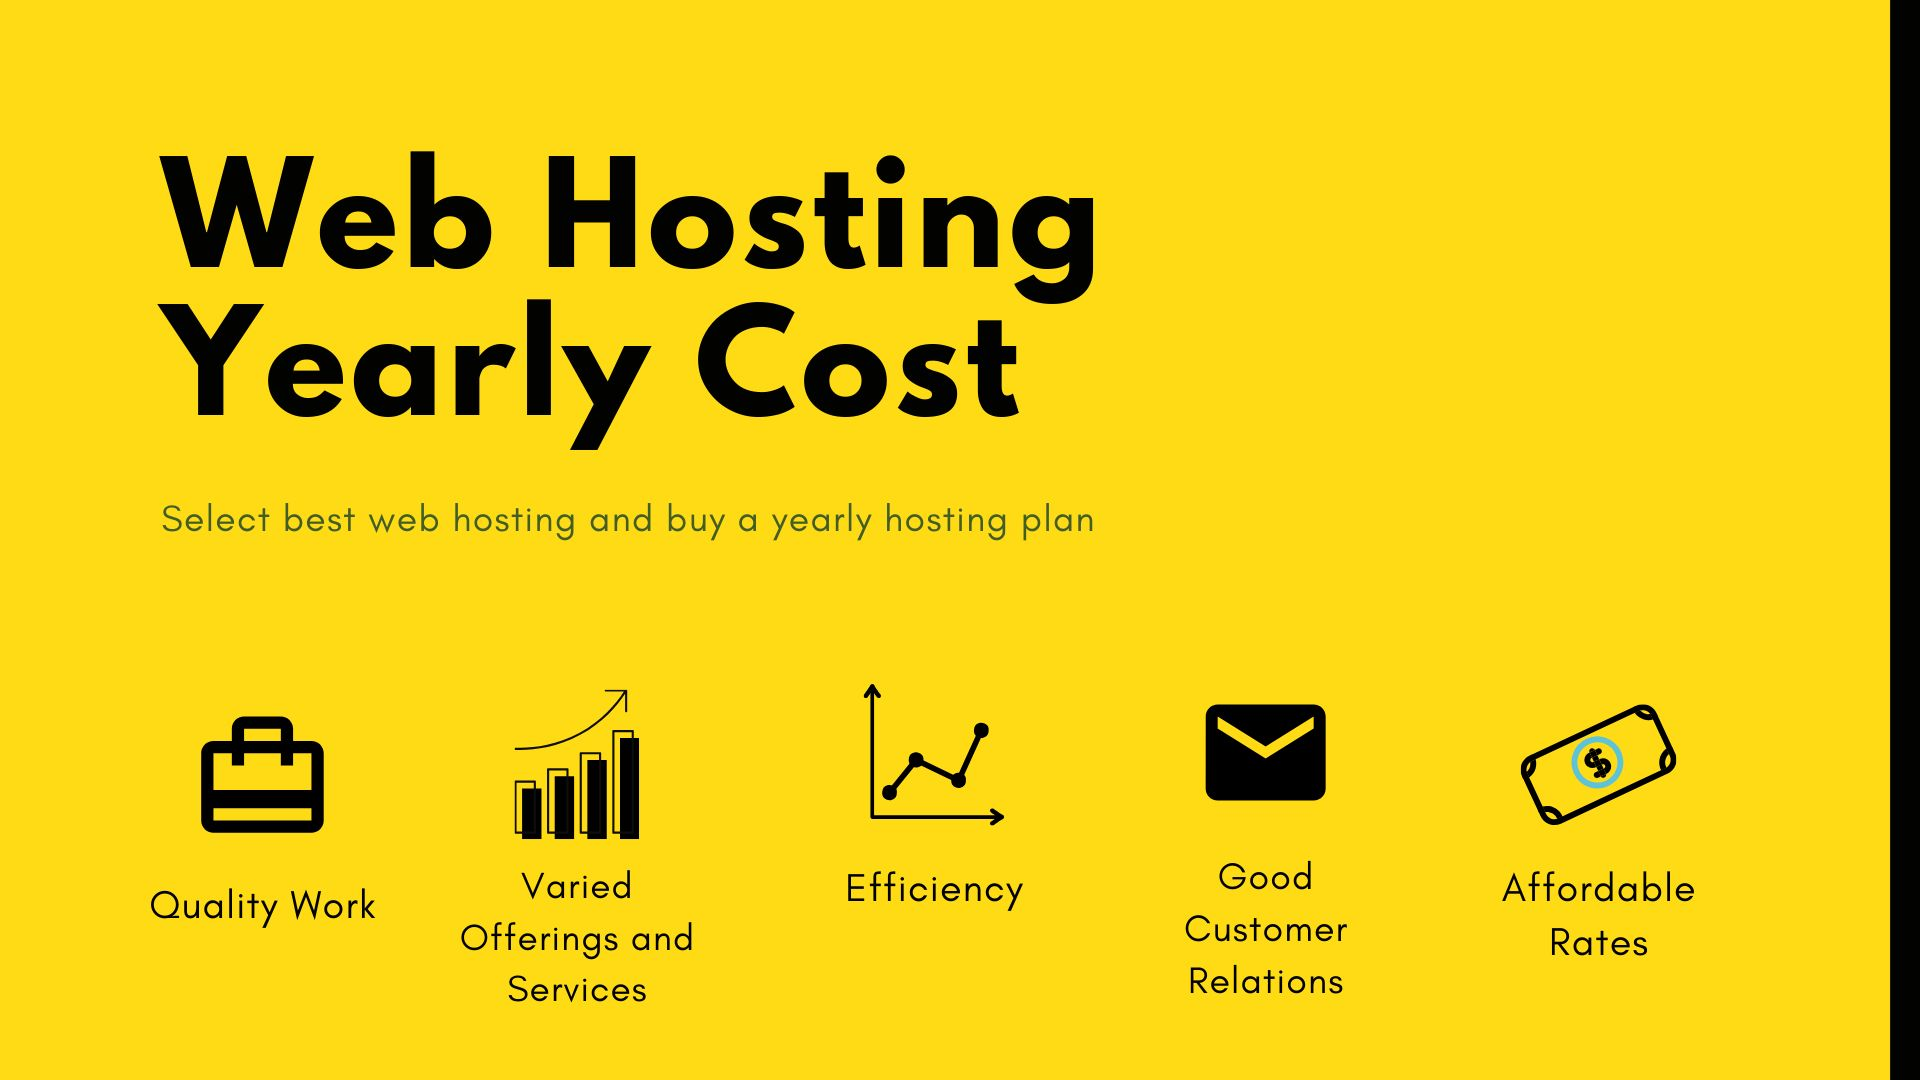 Web Hosting Yearly Cost